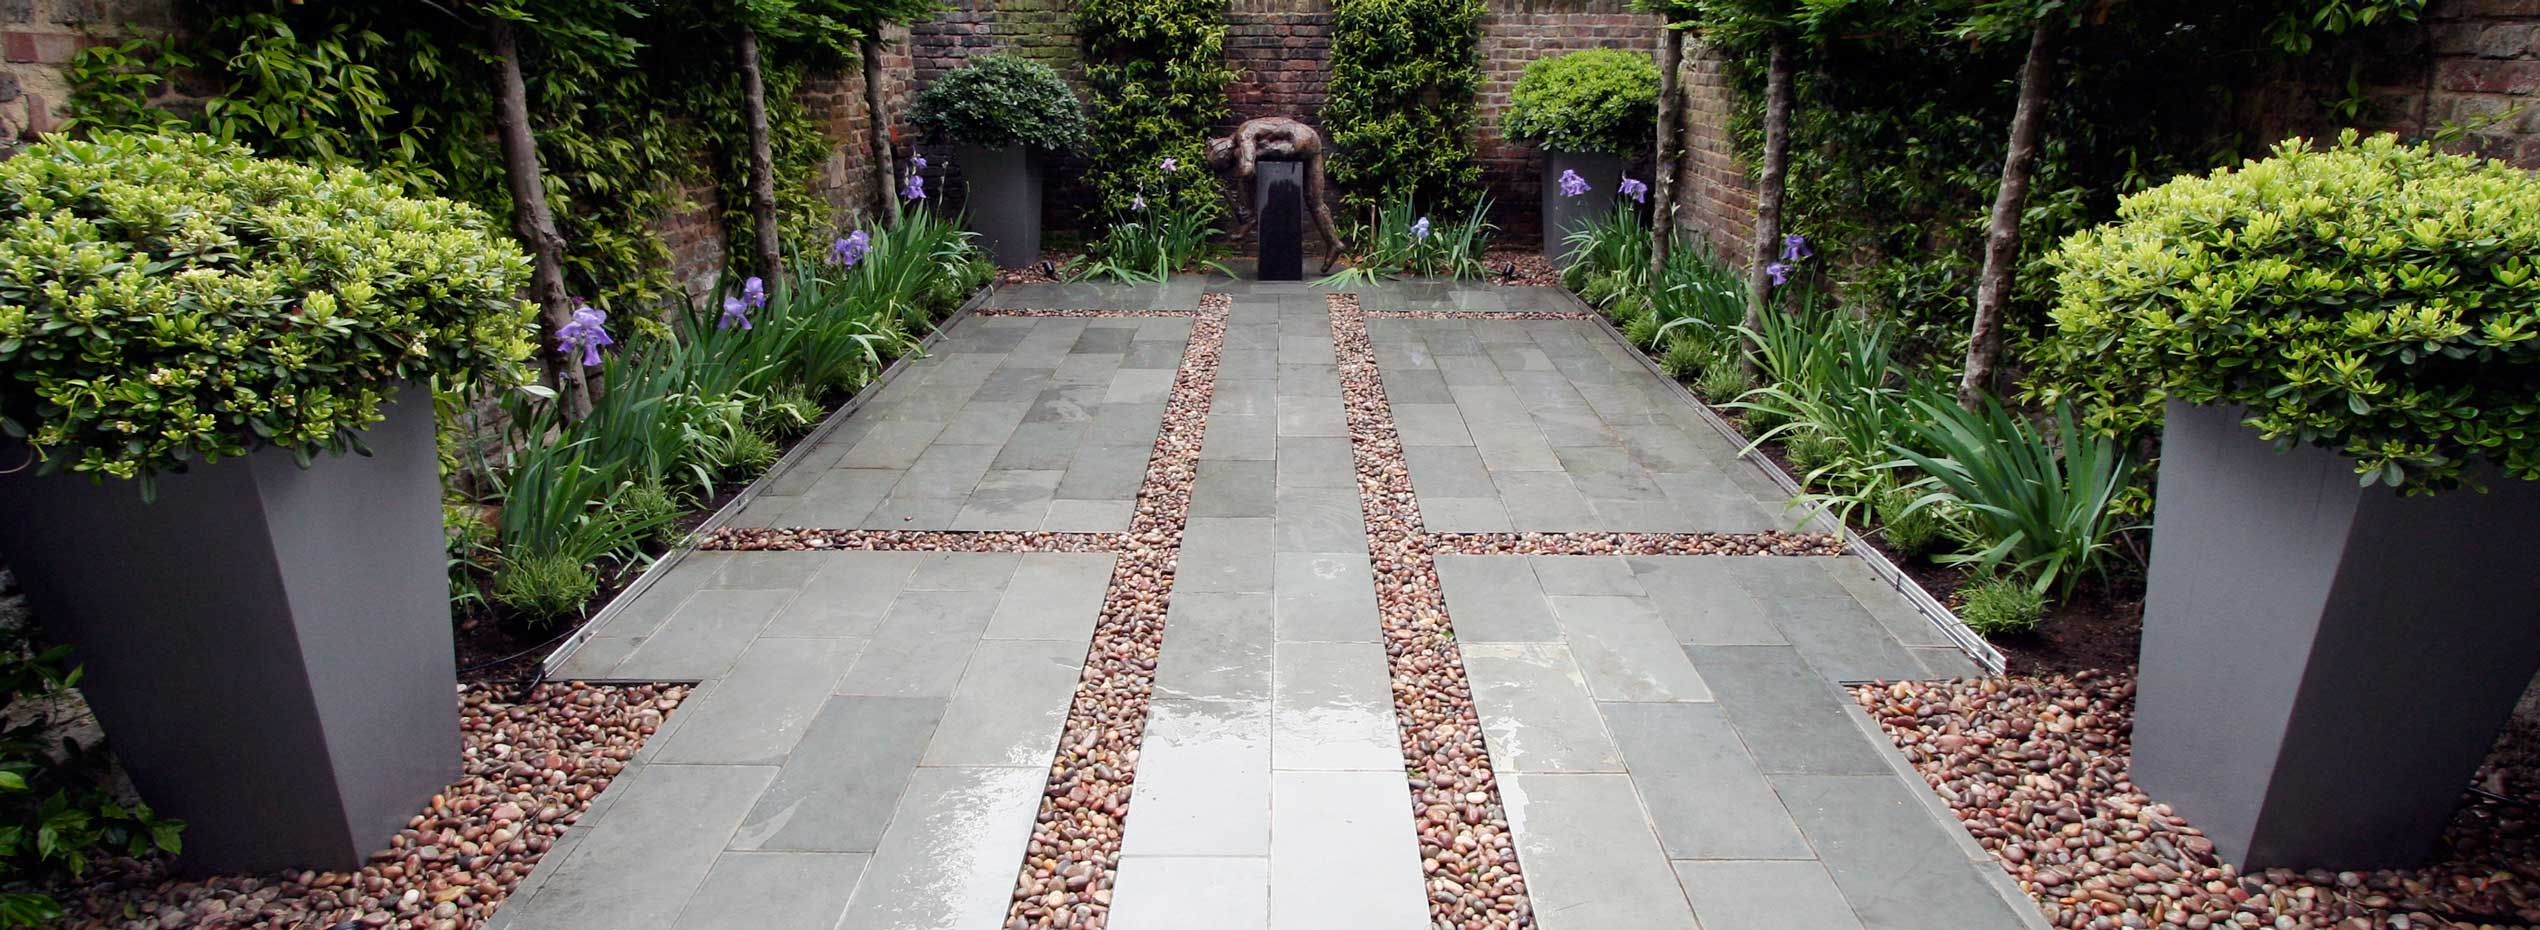 Garden Design in London, 4